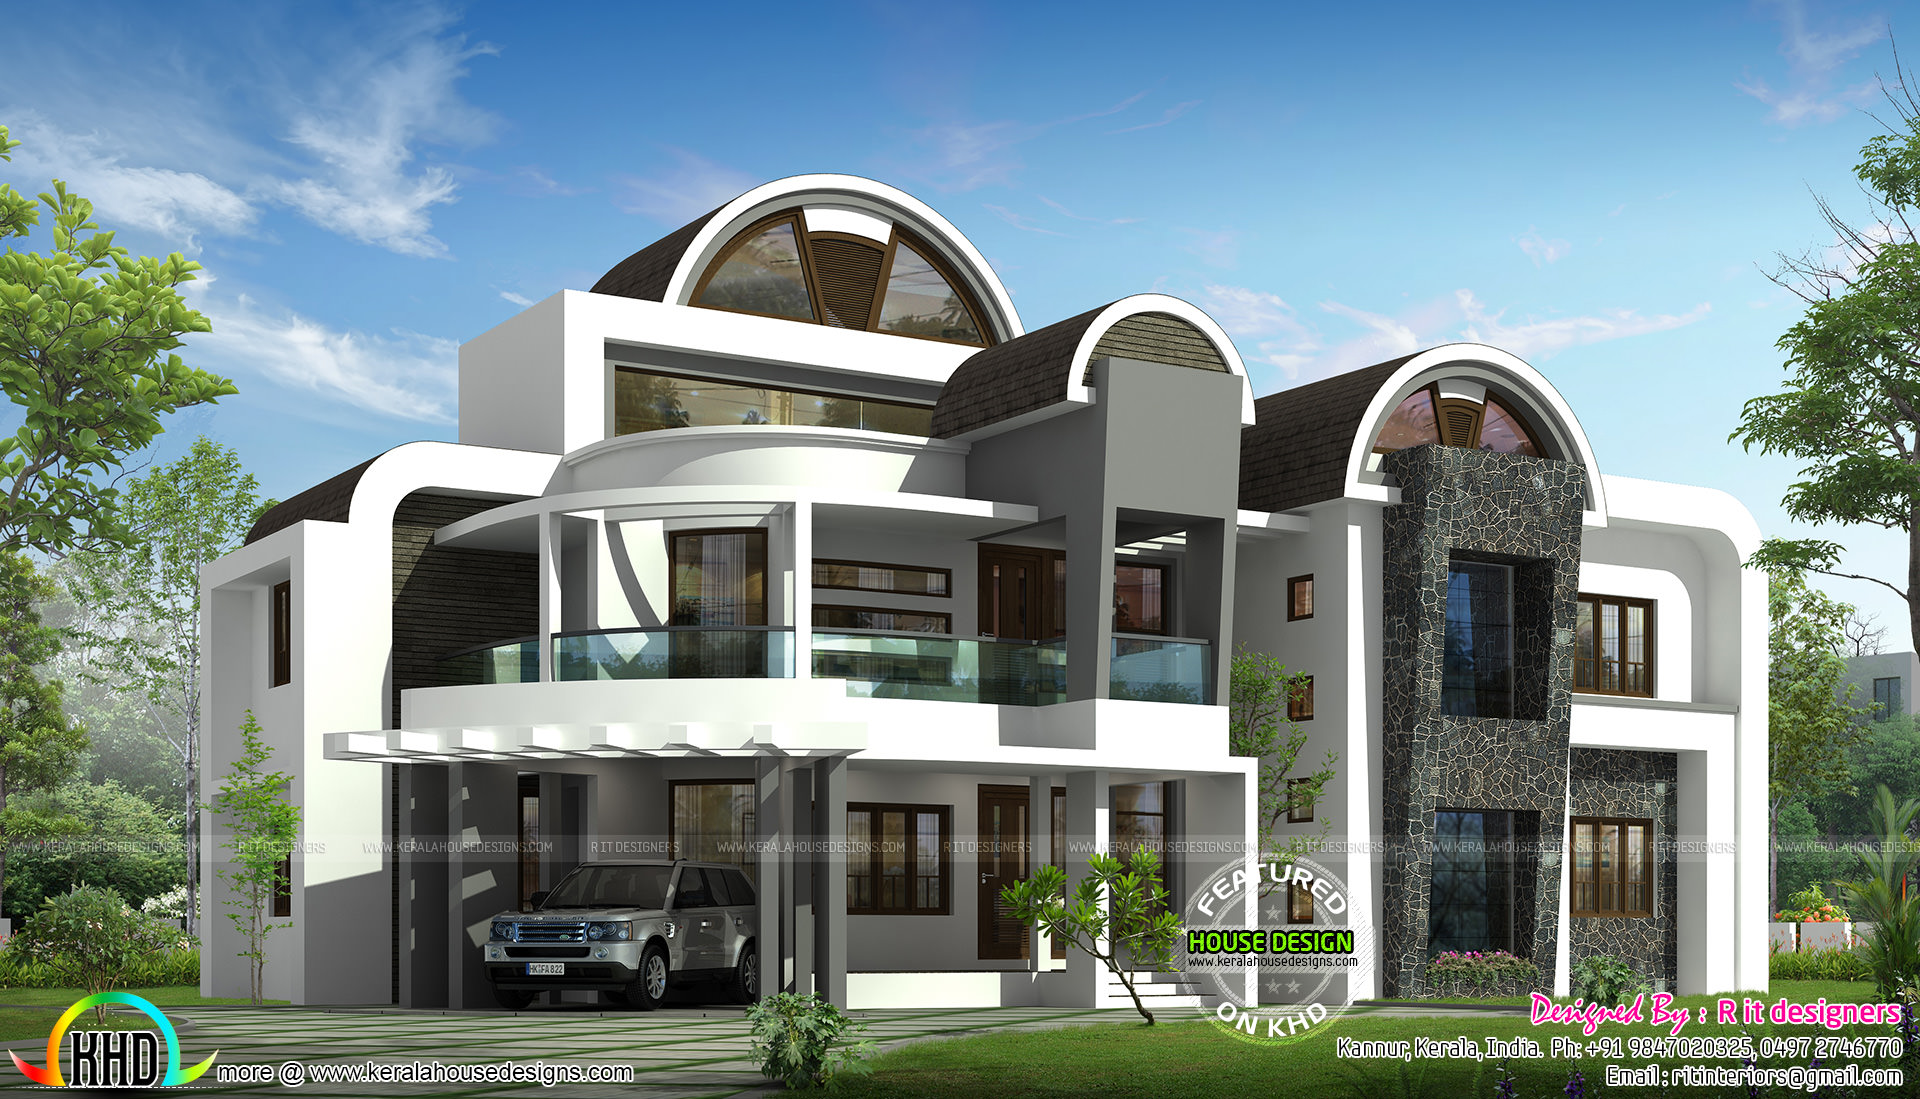 Half round roof unique house design kerala home design for Unique house designs